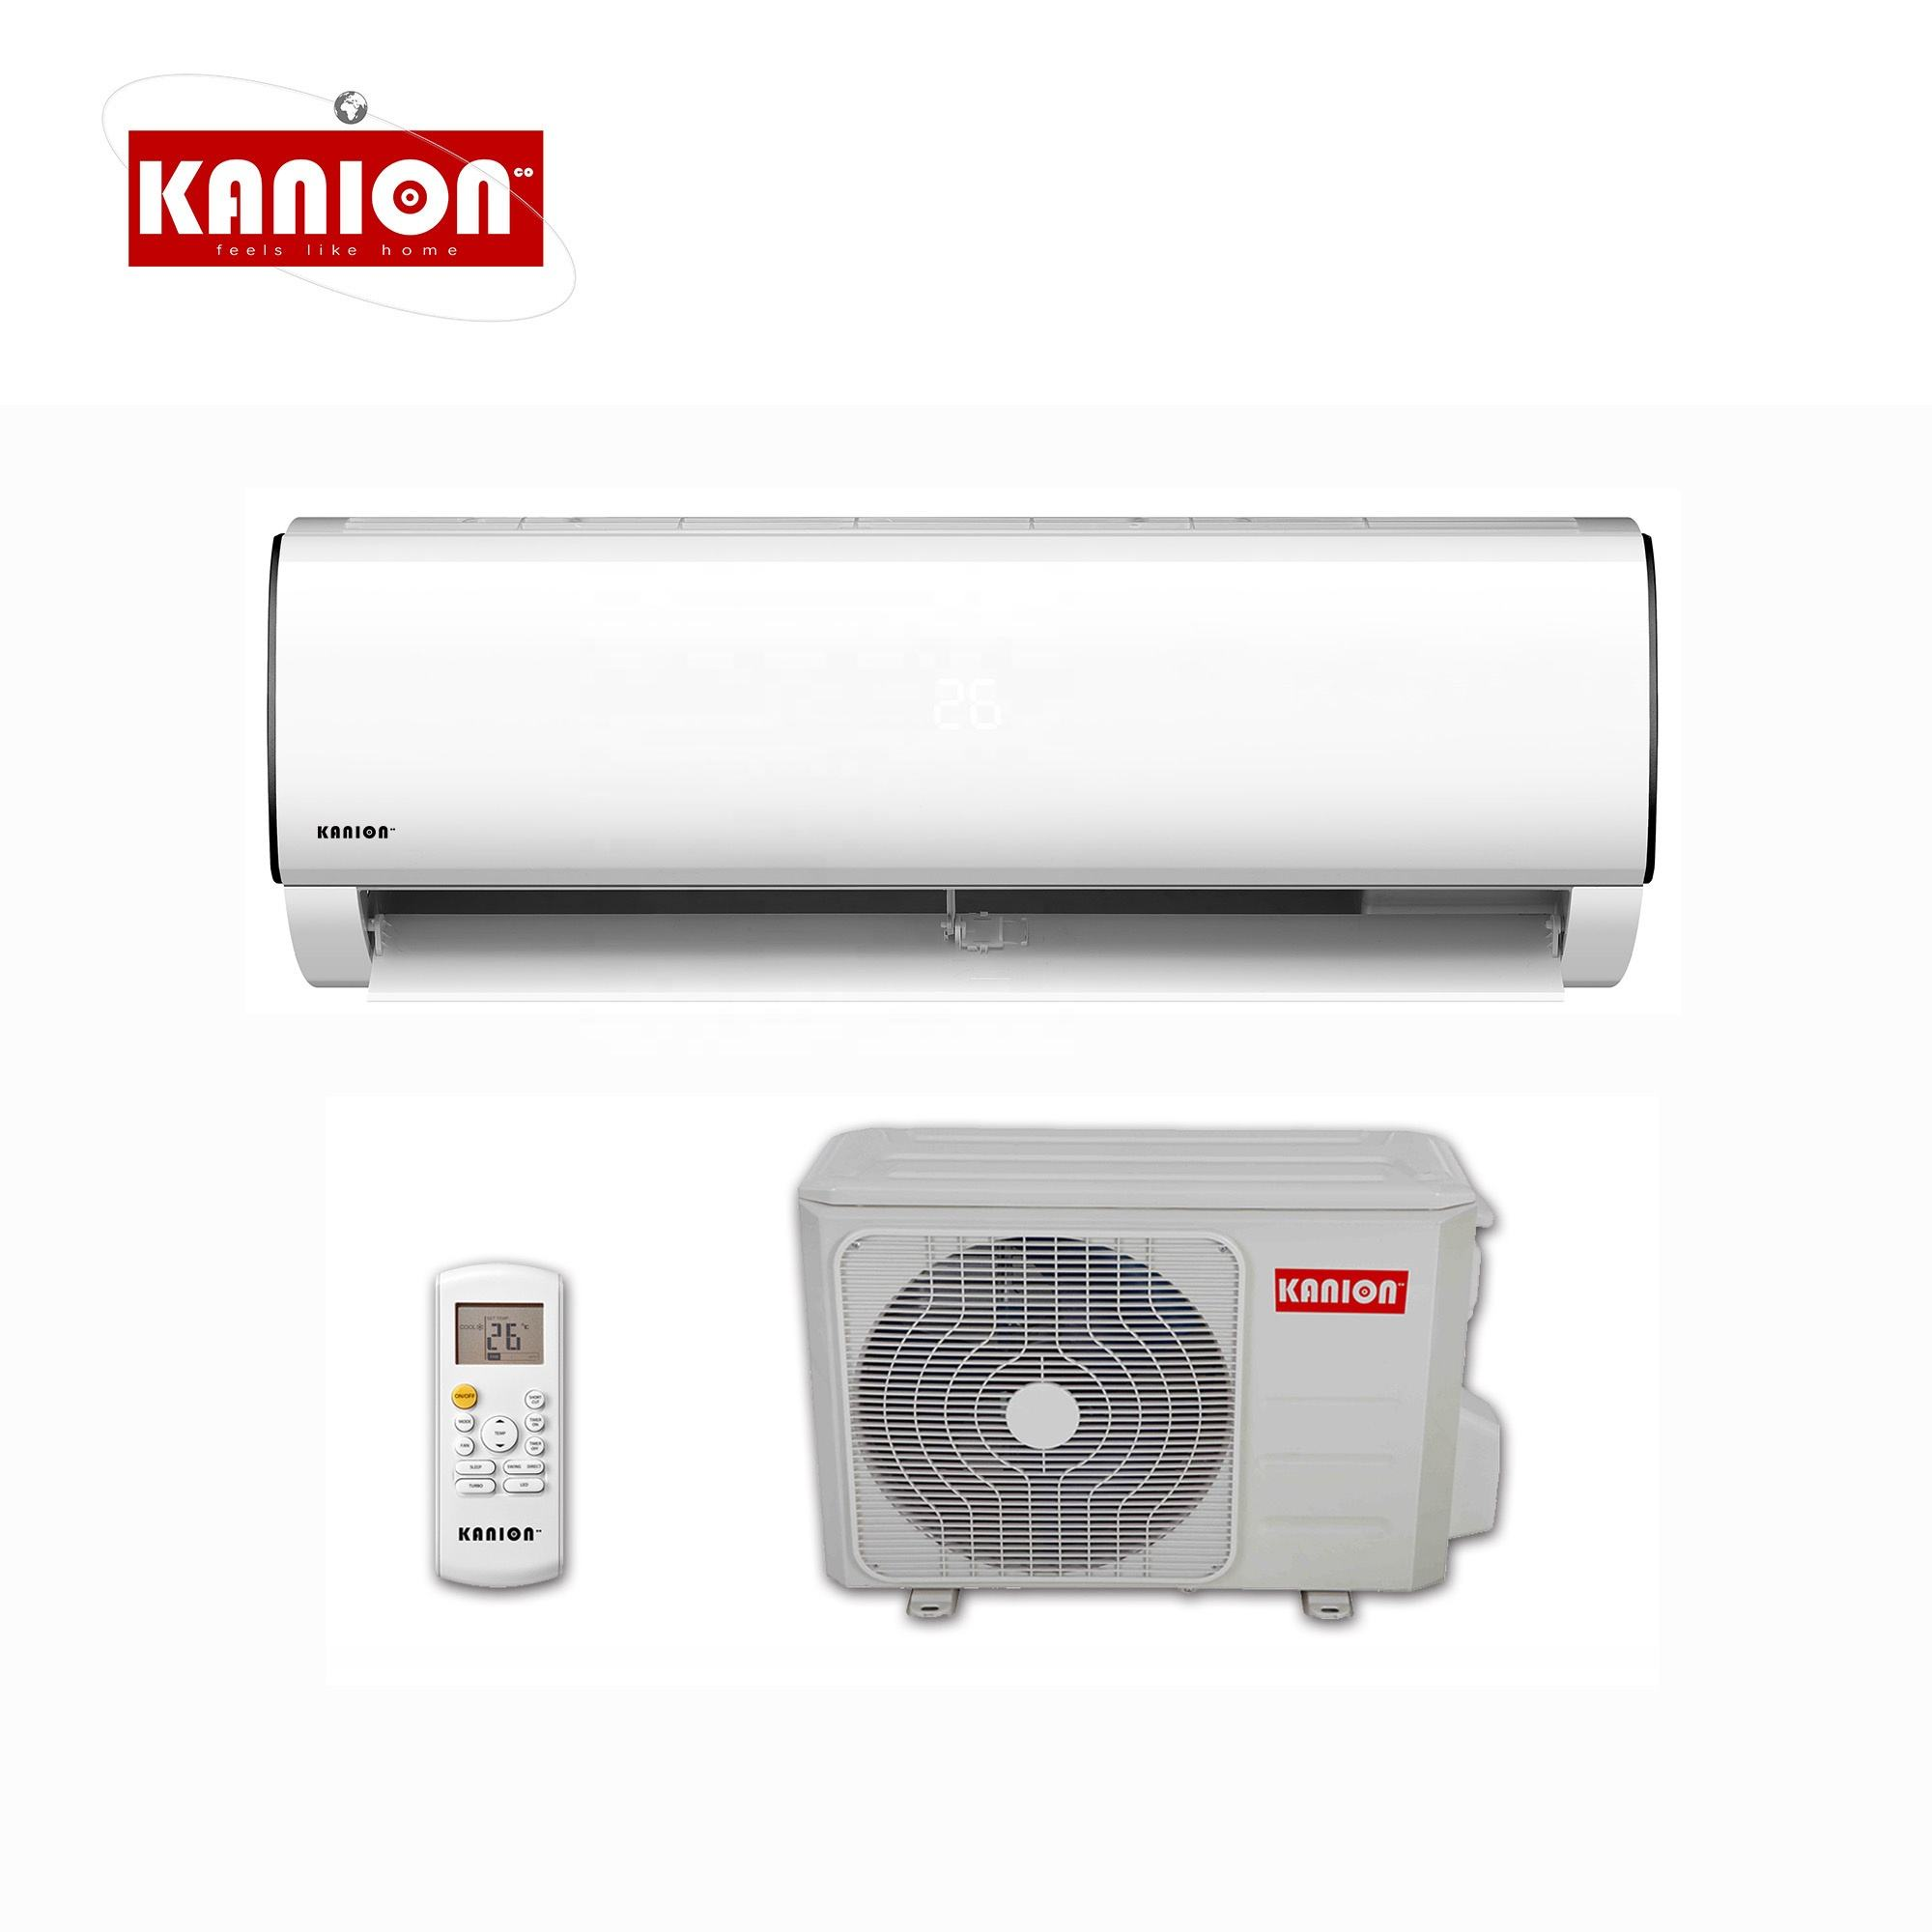 R410a green gas heat pump 220-240v/1Ph/50Hz Famous Japanese compressor Mini split air conditioner